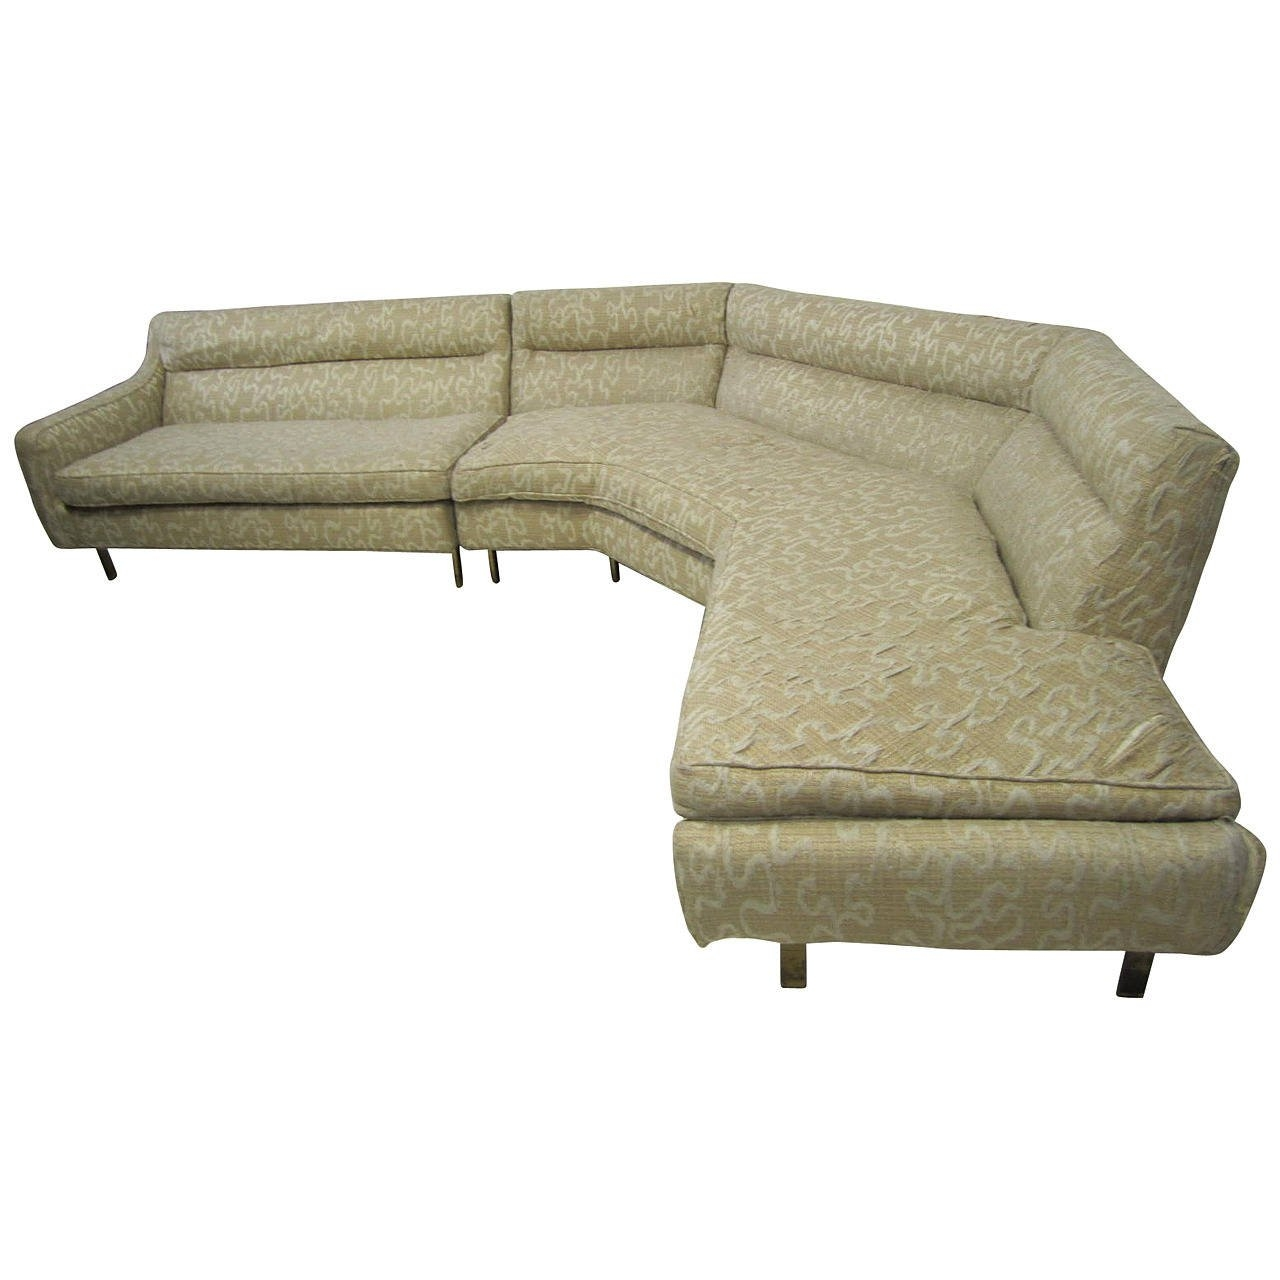 Popular Photo of 45 Degree Sectional Sofa